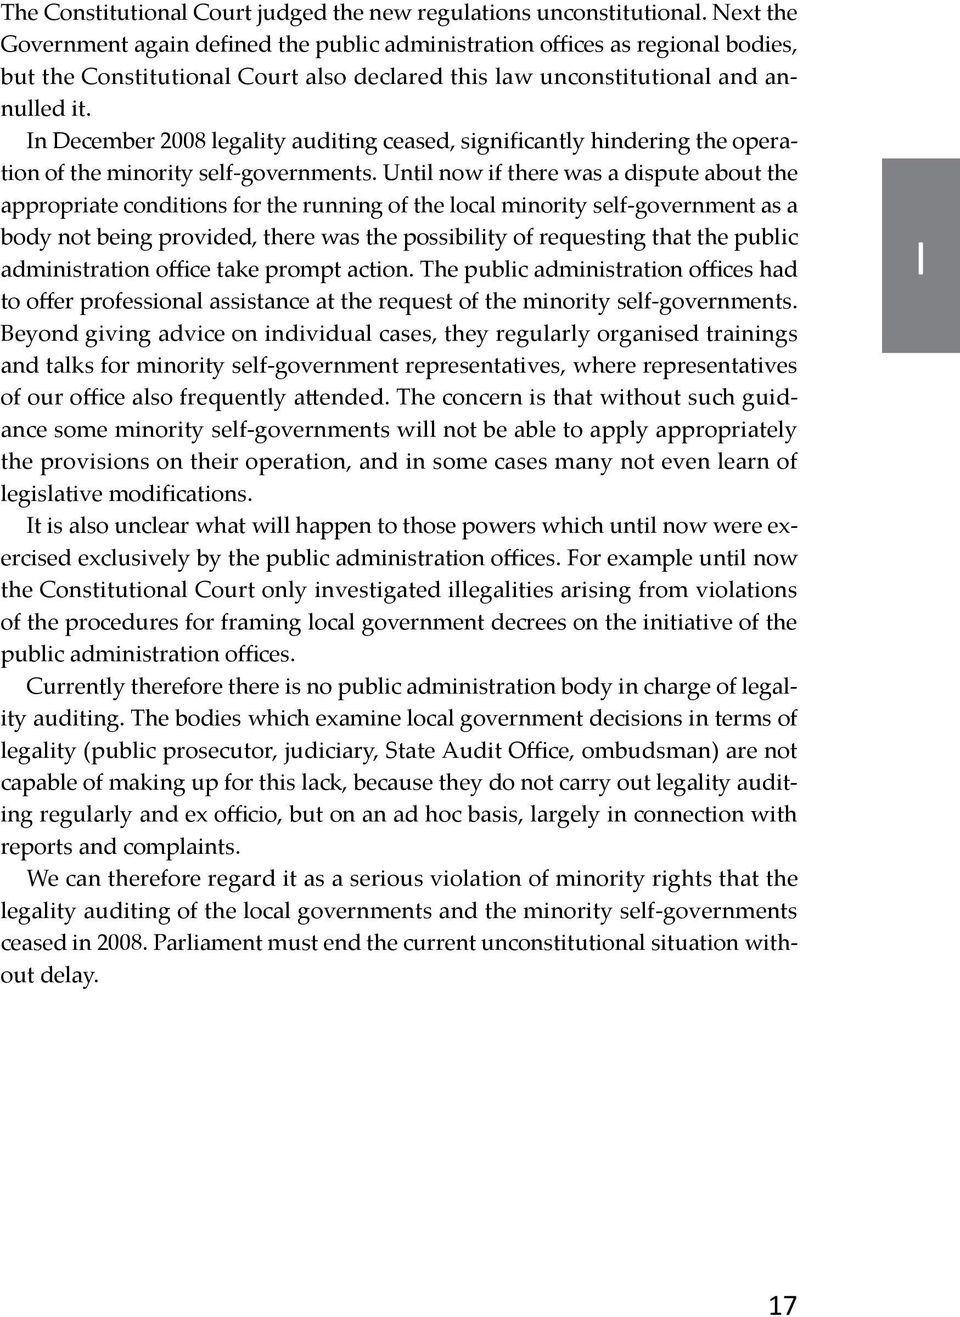 In December 2008 legality auditing ceased, significantly hindering the operation of the minority self-governments.